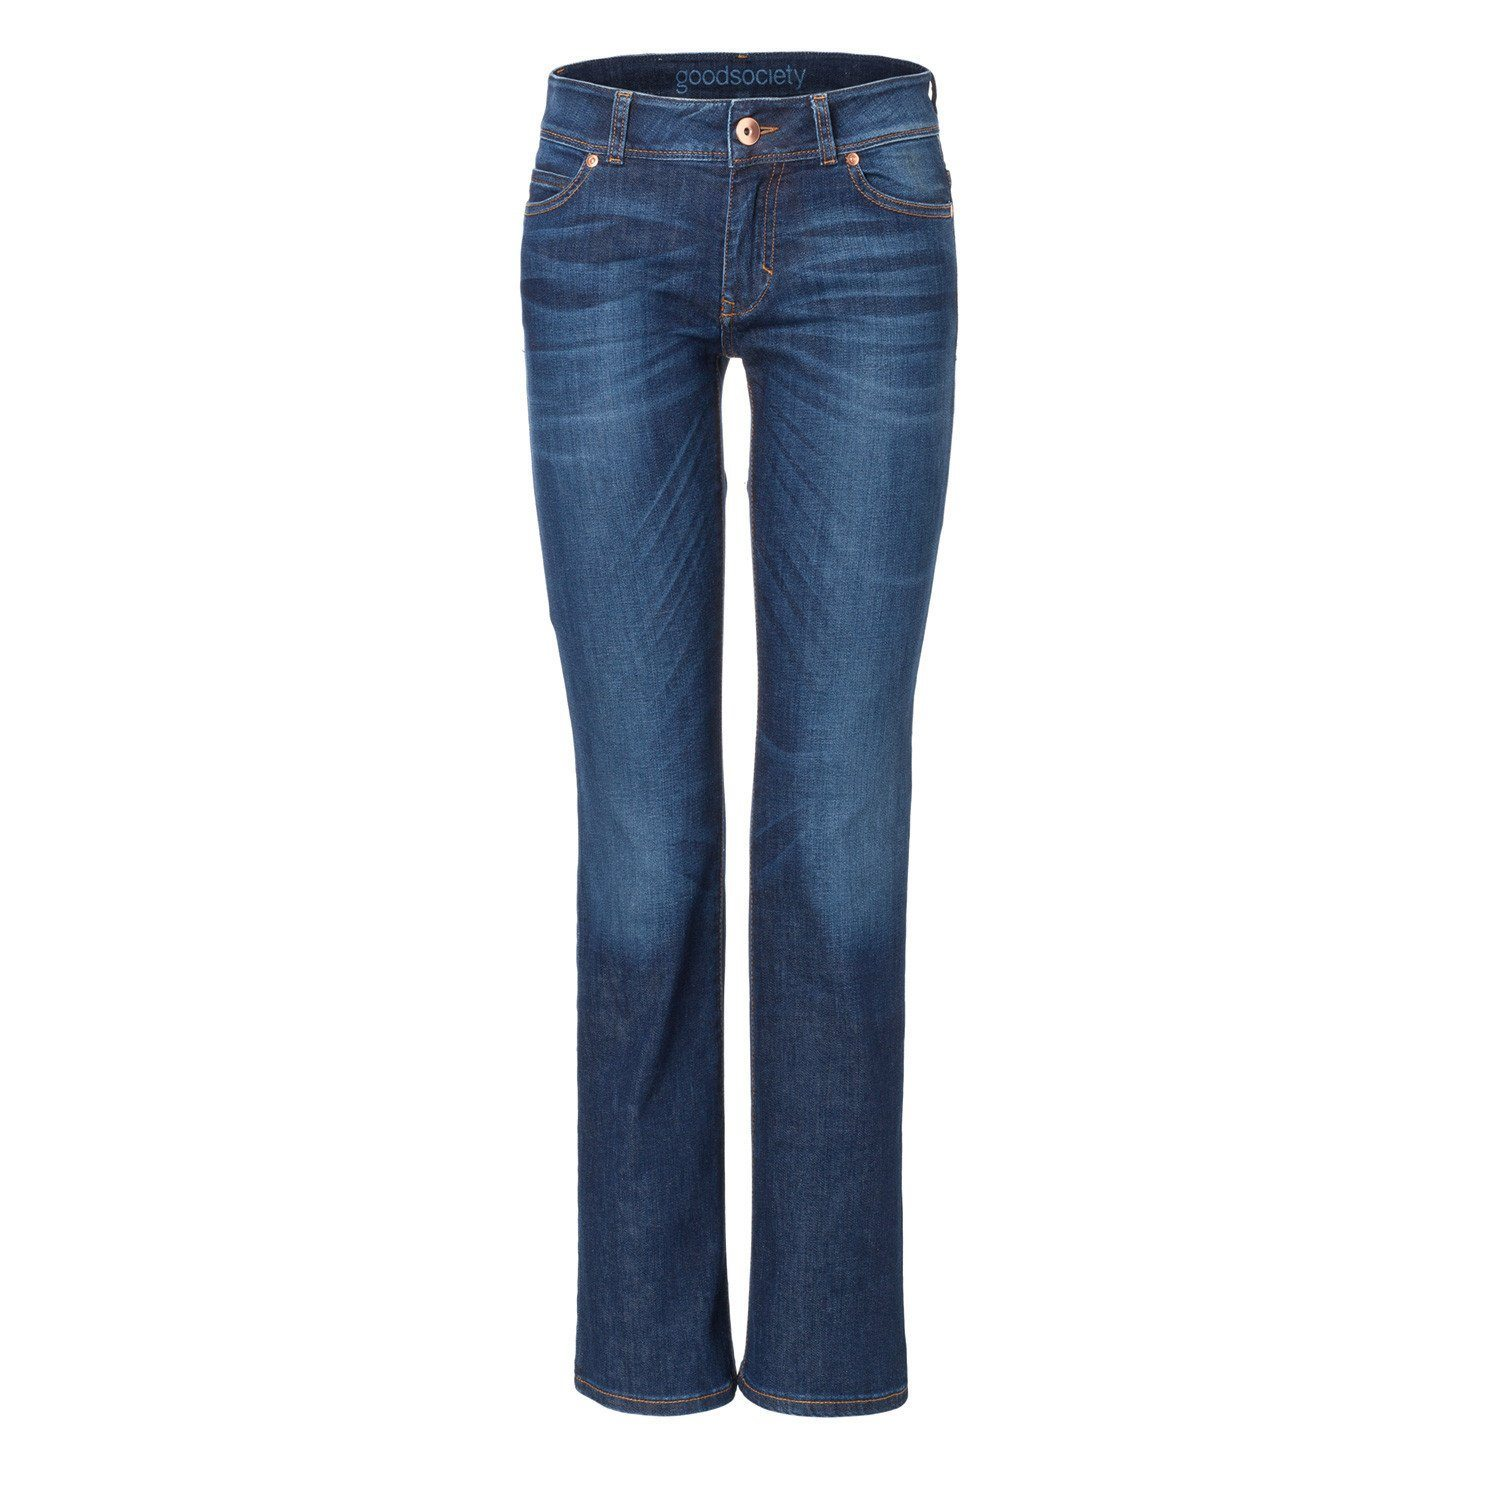 Womens Bootcut Jeans - Kyanos from Goodsociety